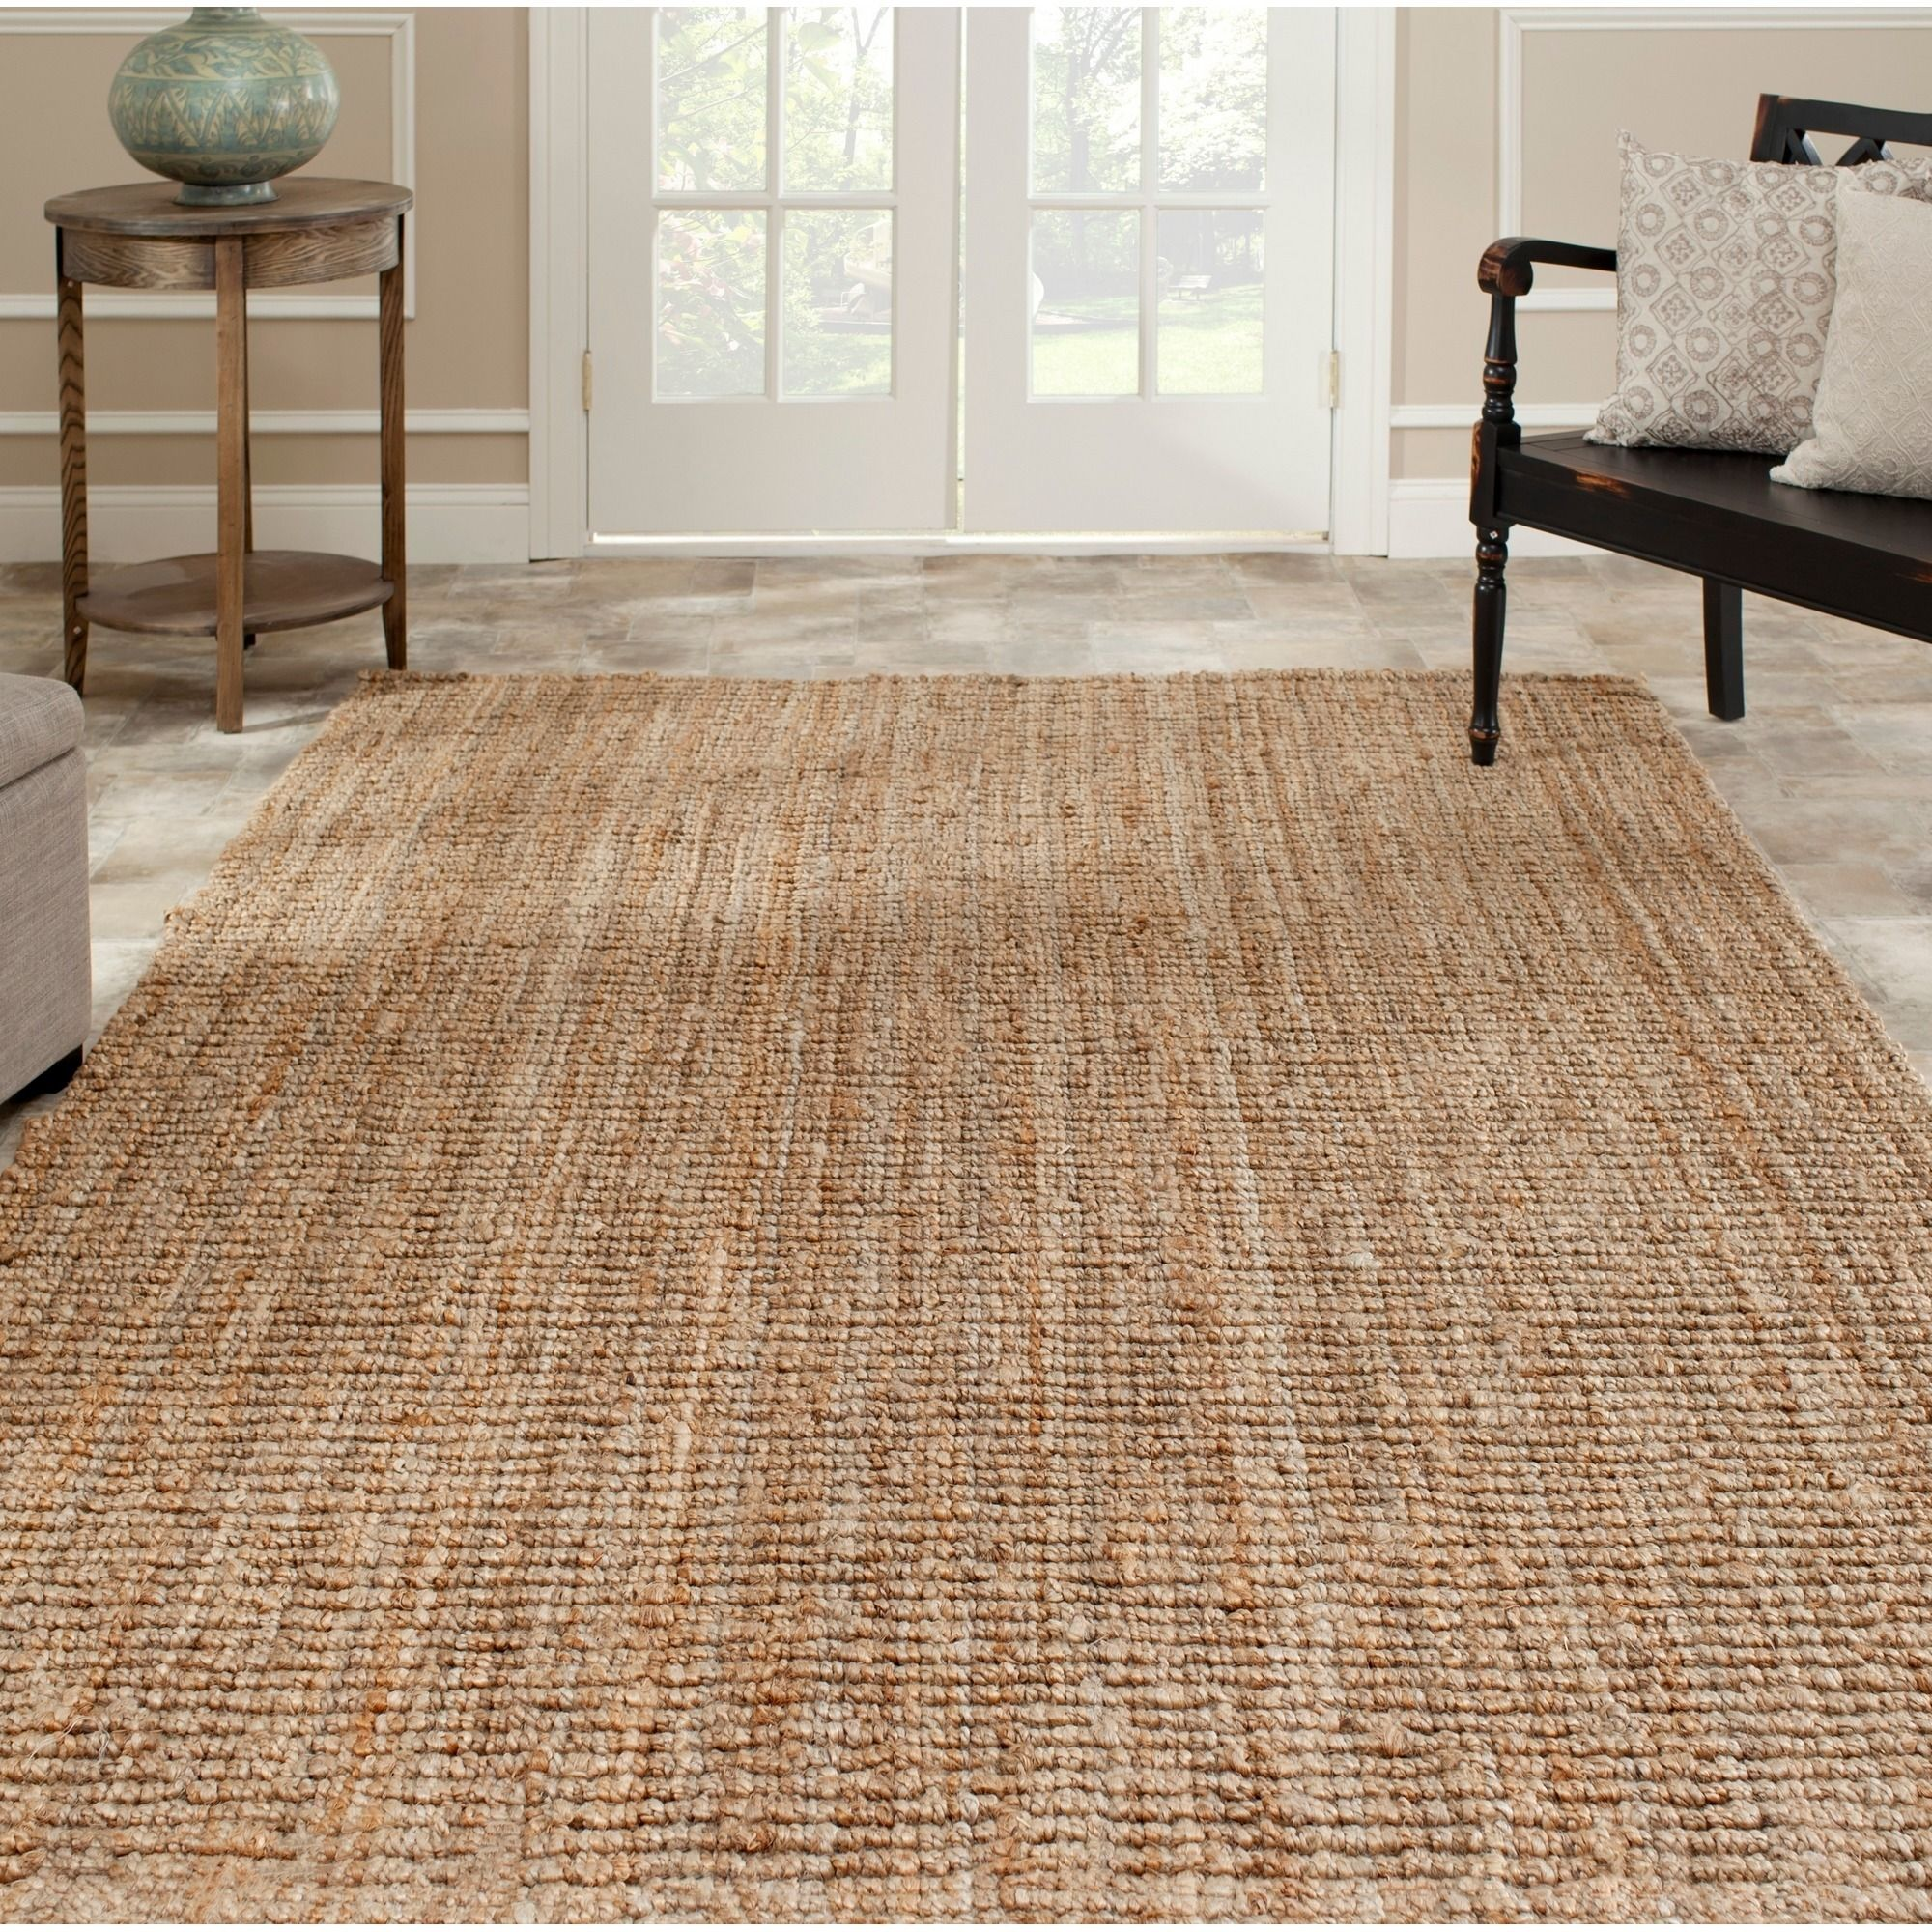 Safavieh Hand Woven Weaves Natural Colored Fine Sisal Rug 9 X 12 Overstock Com Shopping The Best D Sisal Area Rugs Natural Area Rugs Natural Fiber Rugs